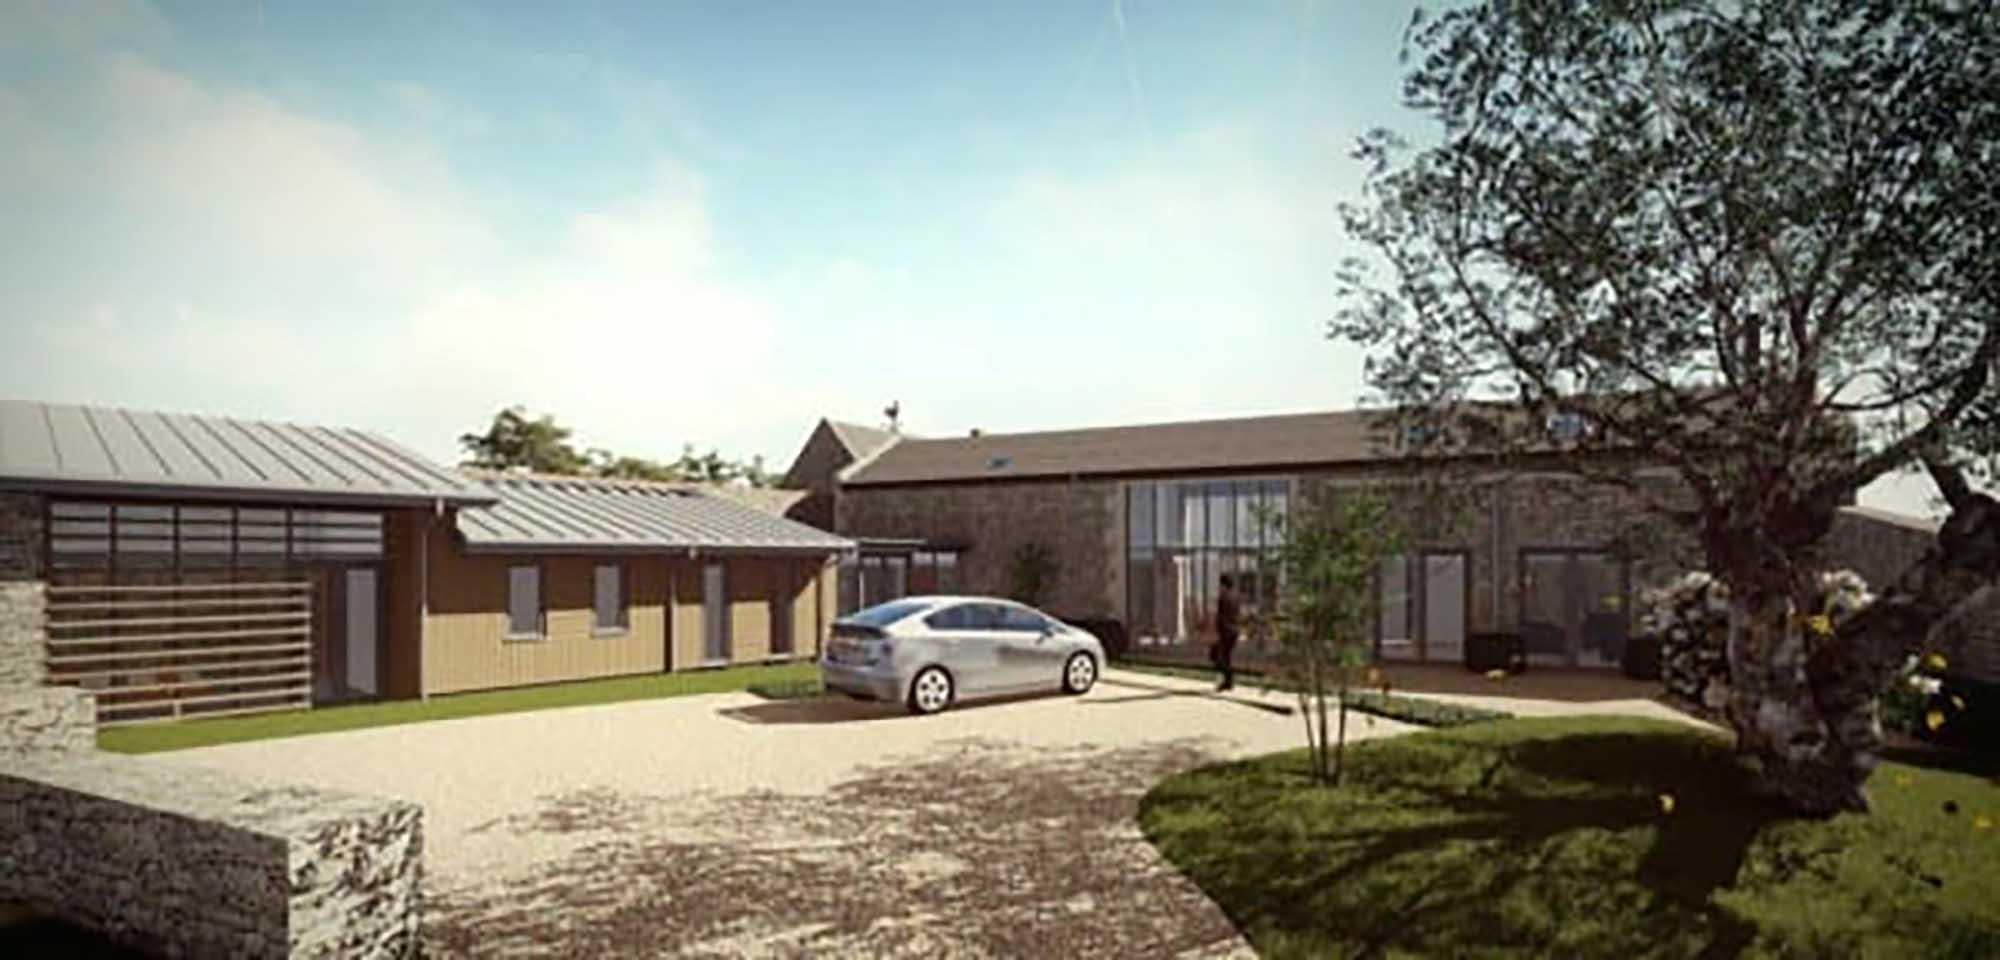 Barn with p/p to create a wonderful 4 bedroom dwelling.